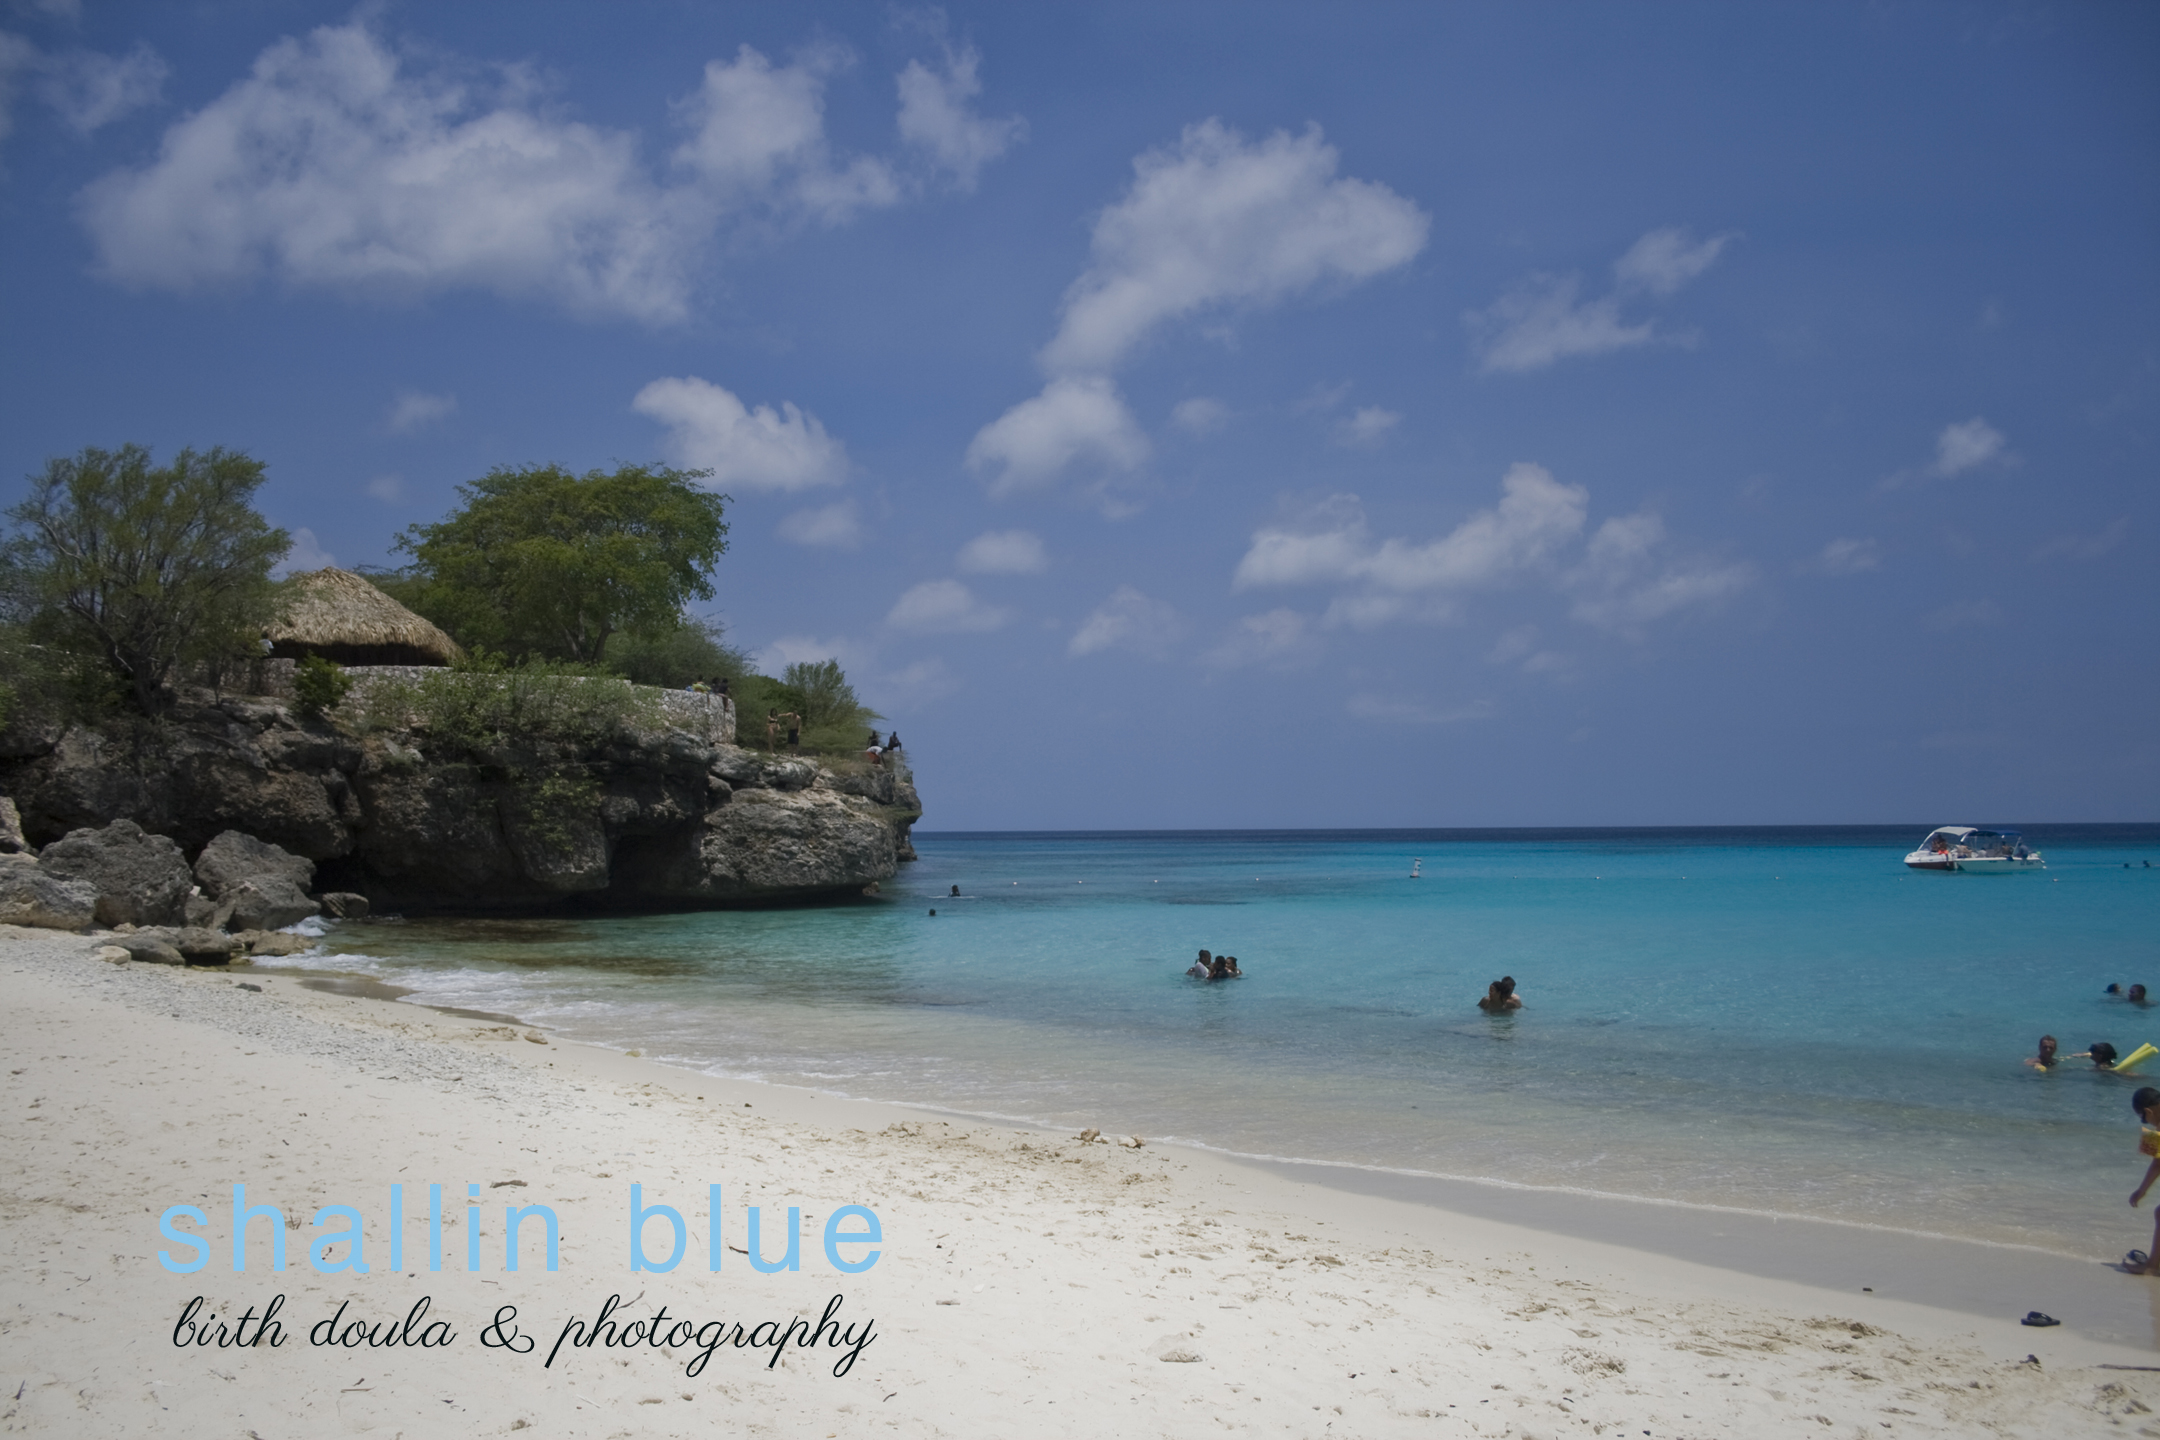 The hue of Shallin Blue captured here, at Knip Beach, Curacao